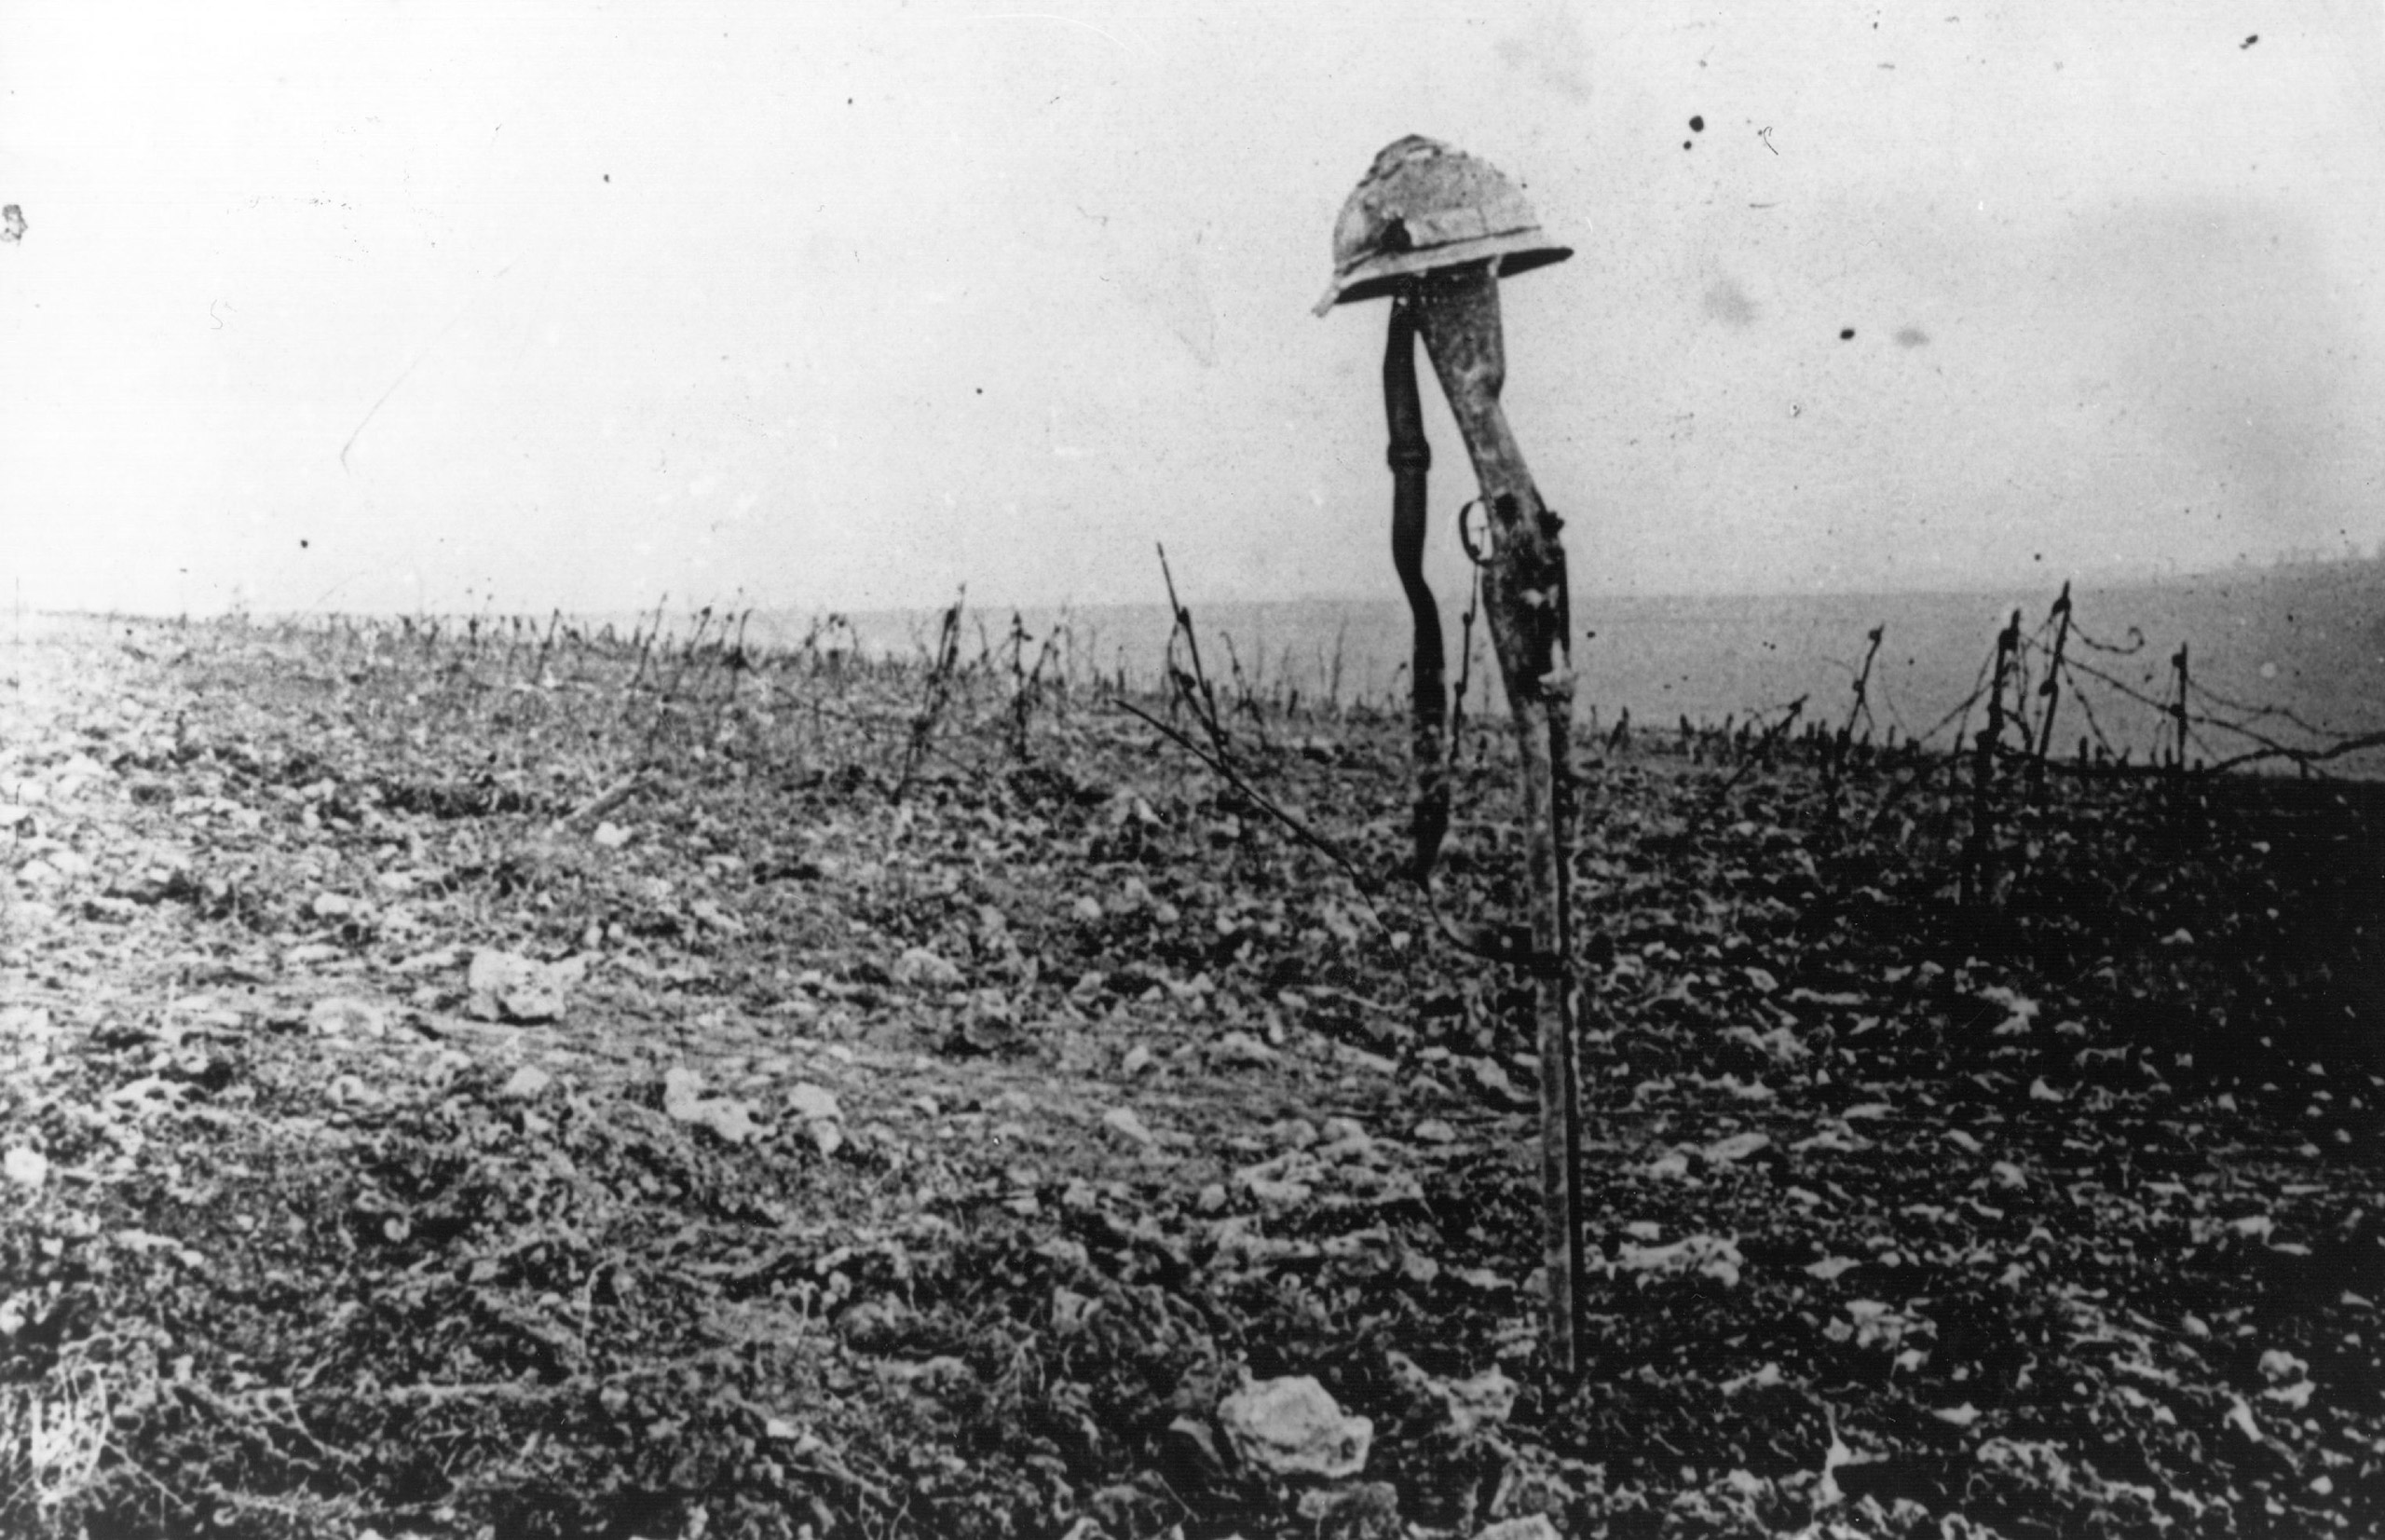 A French soldier's grave, marked by his rifle and helmet, on the battlefield of Verdun.